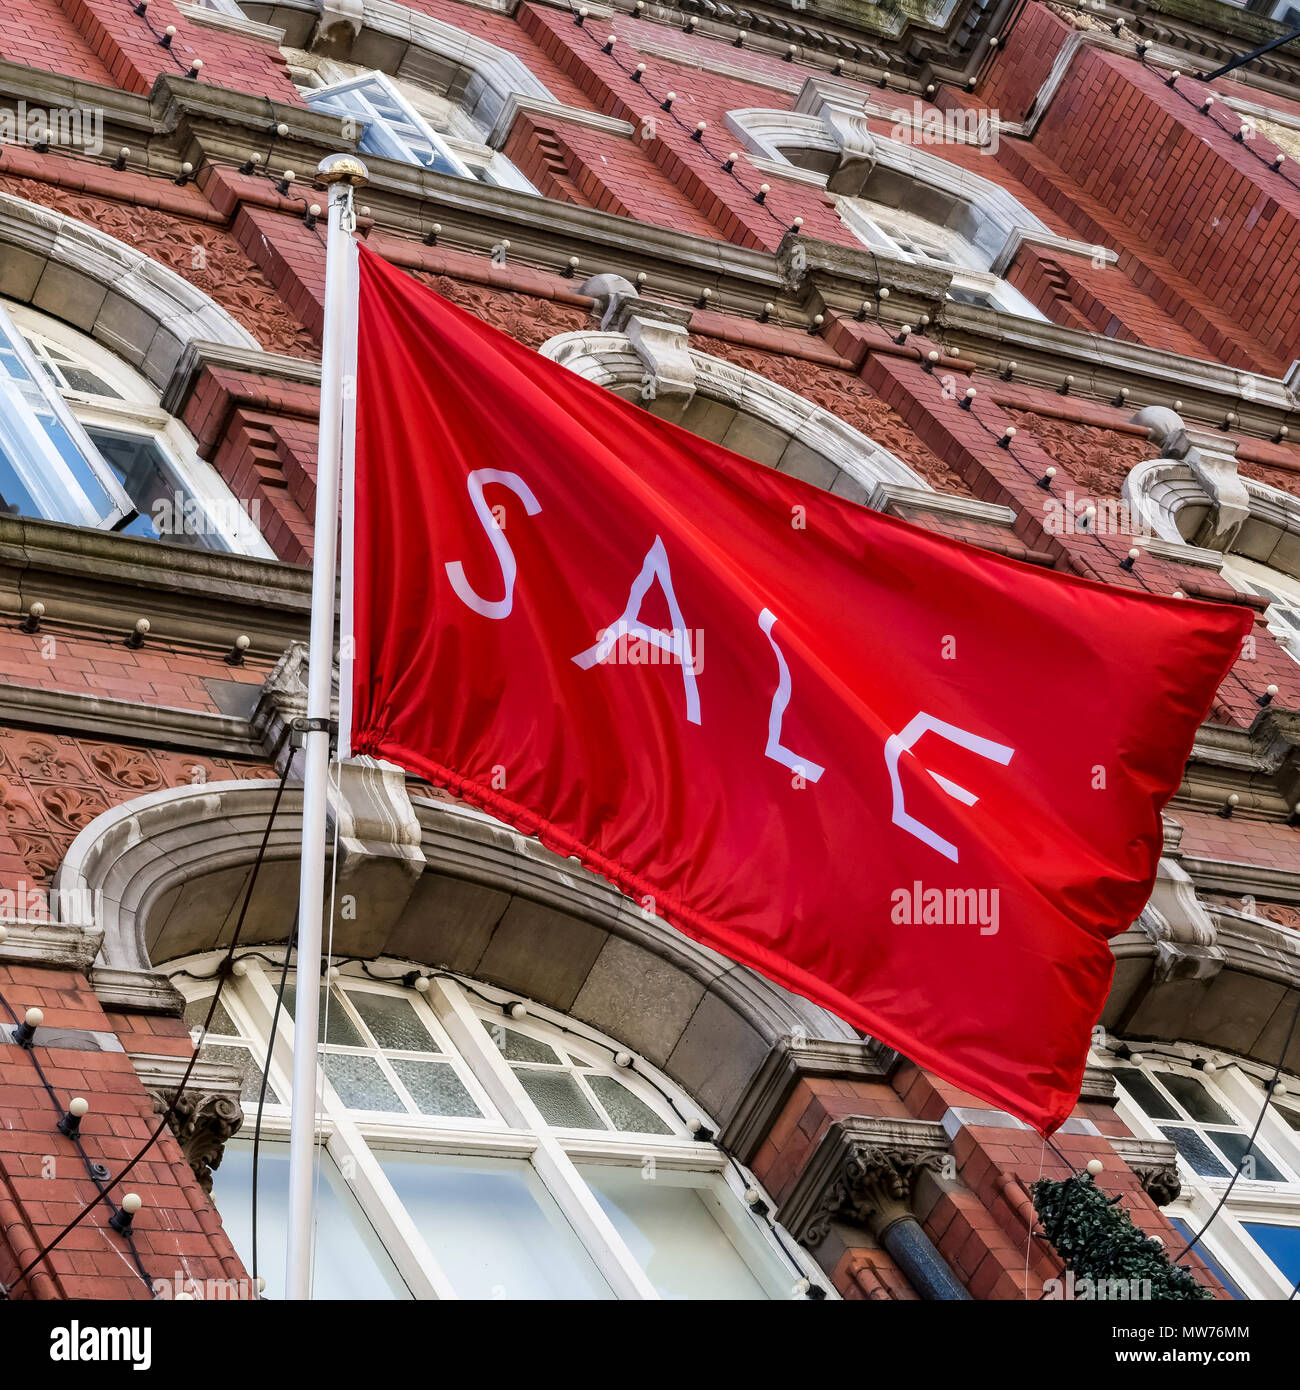 Shopping,sale red flag flying at Arnotts Department Store,brownstone building facade,on Henry Street. Dublin,Ireland. Close up,low angle view. - Stock Image